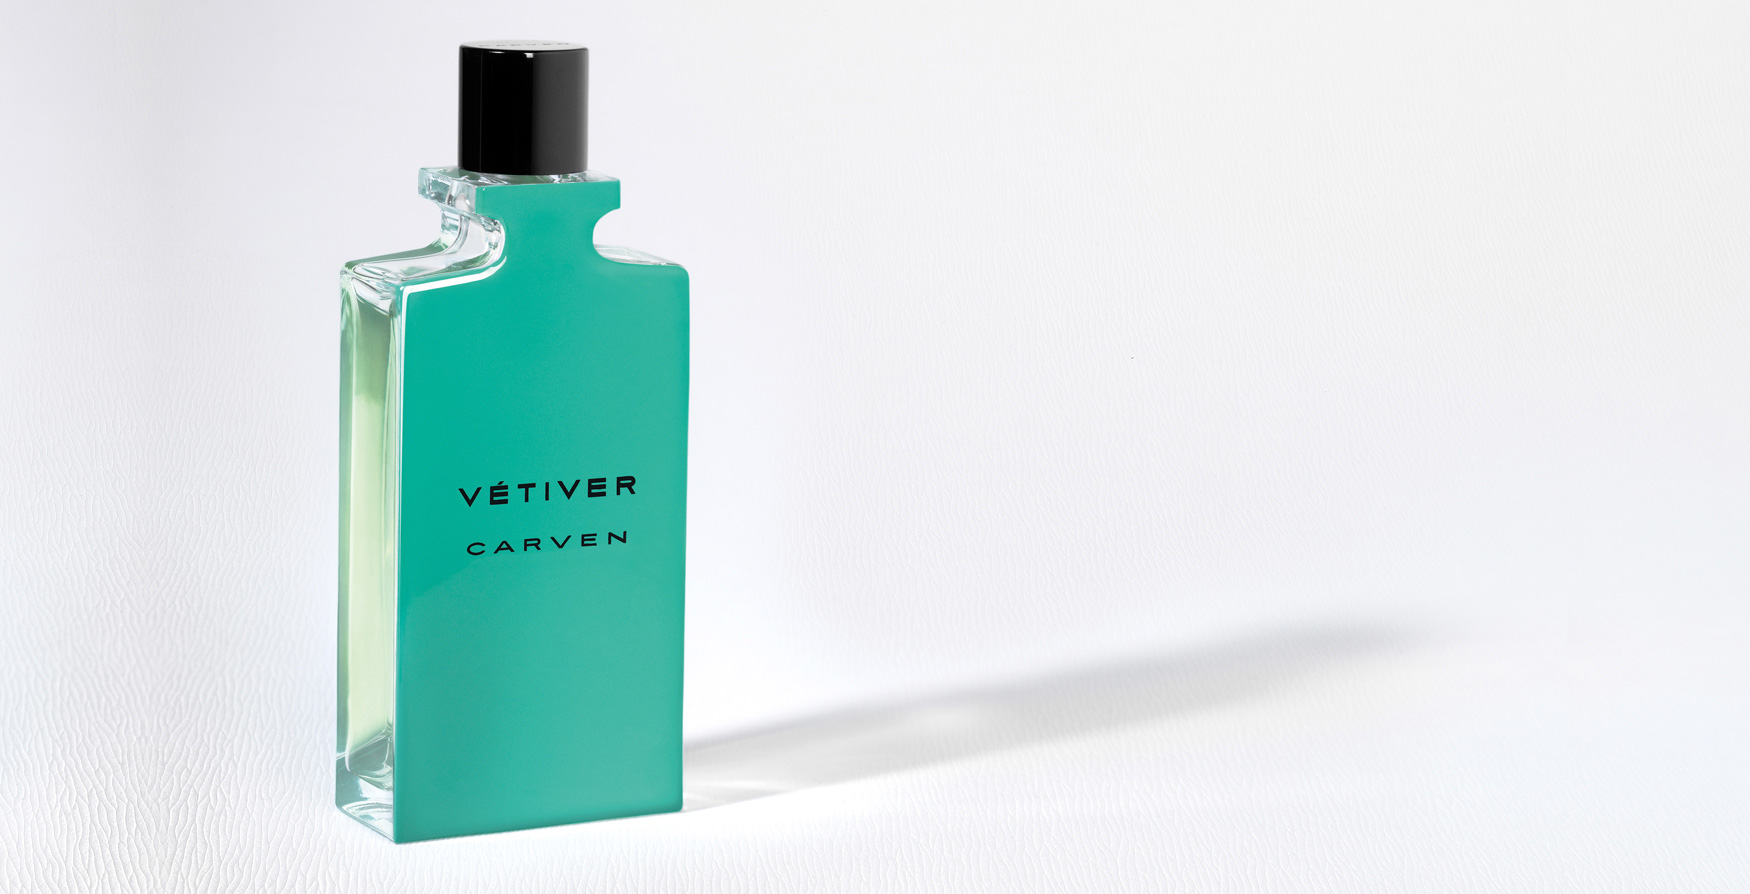 Carven Vetiver by Carven Parfums: Cologne with History